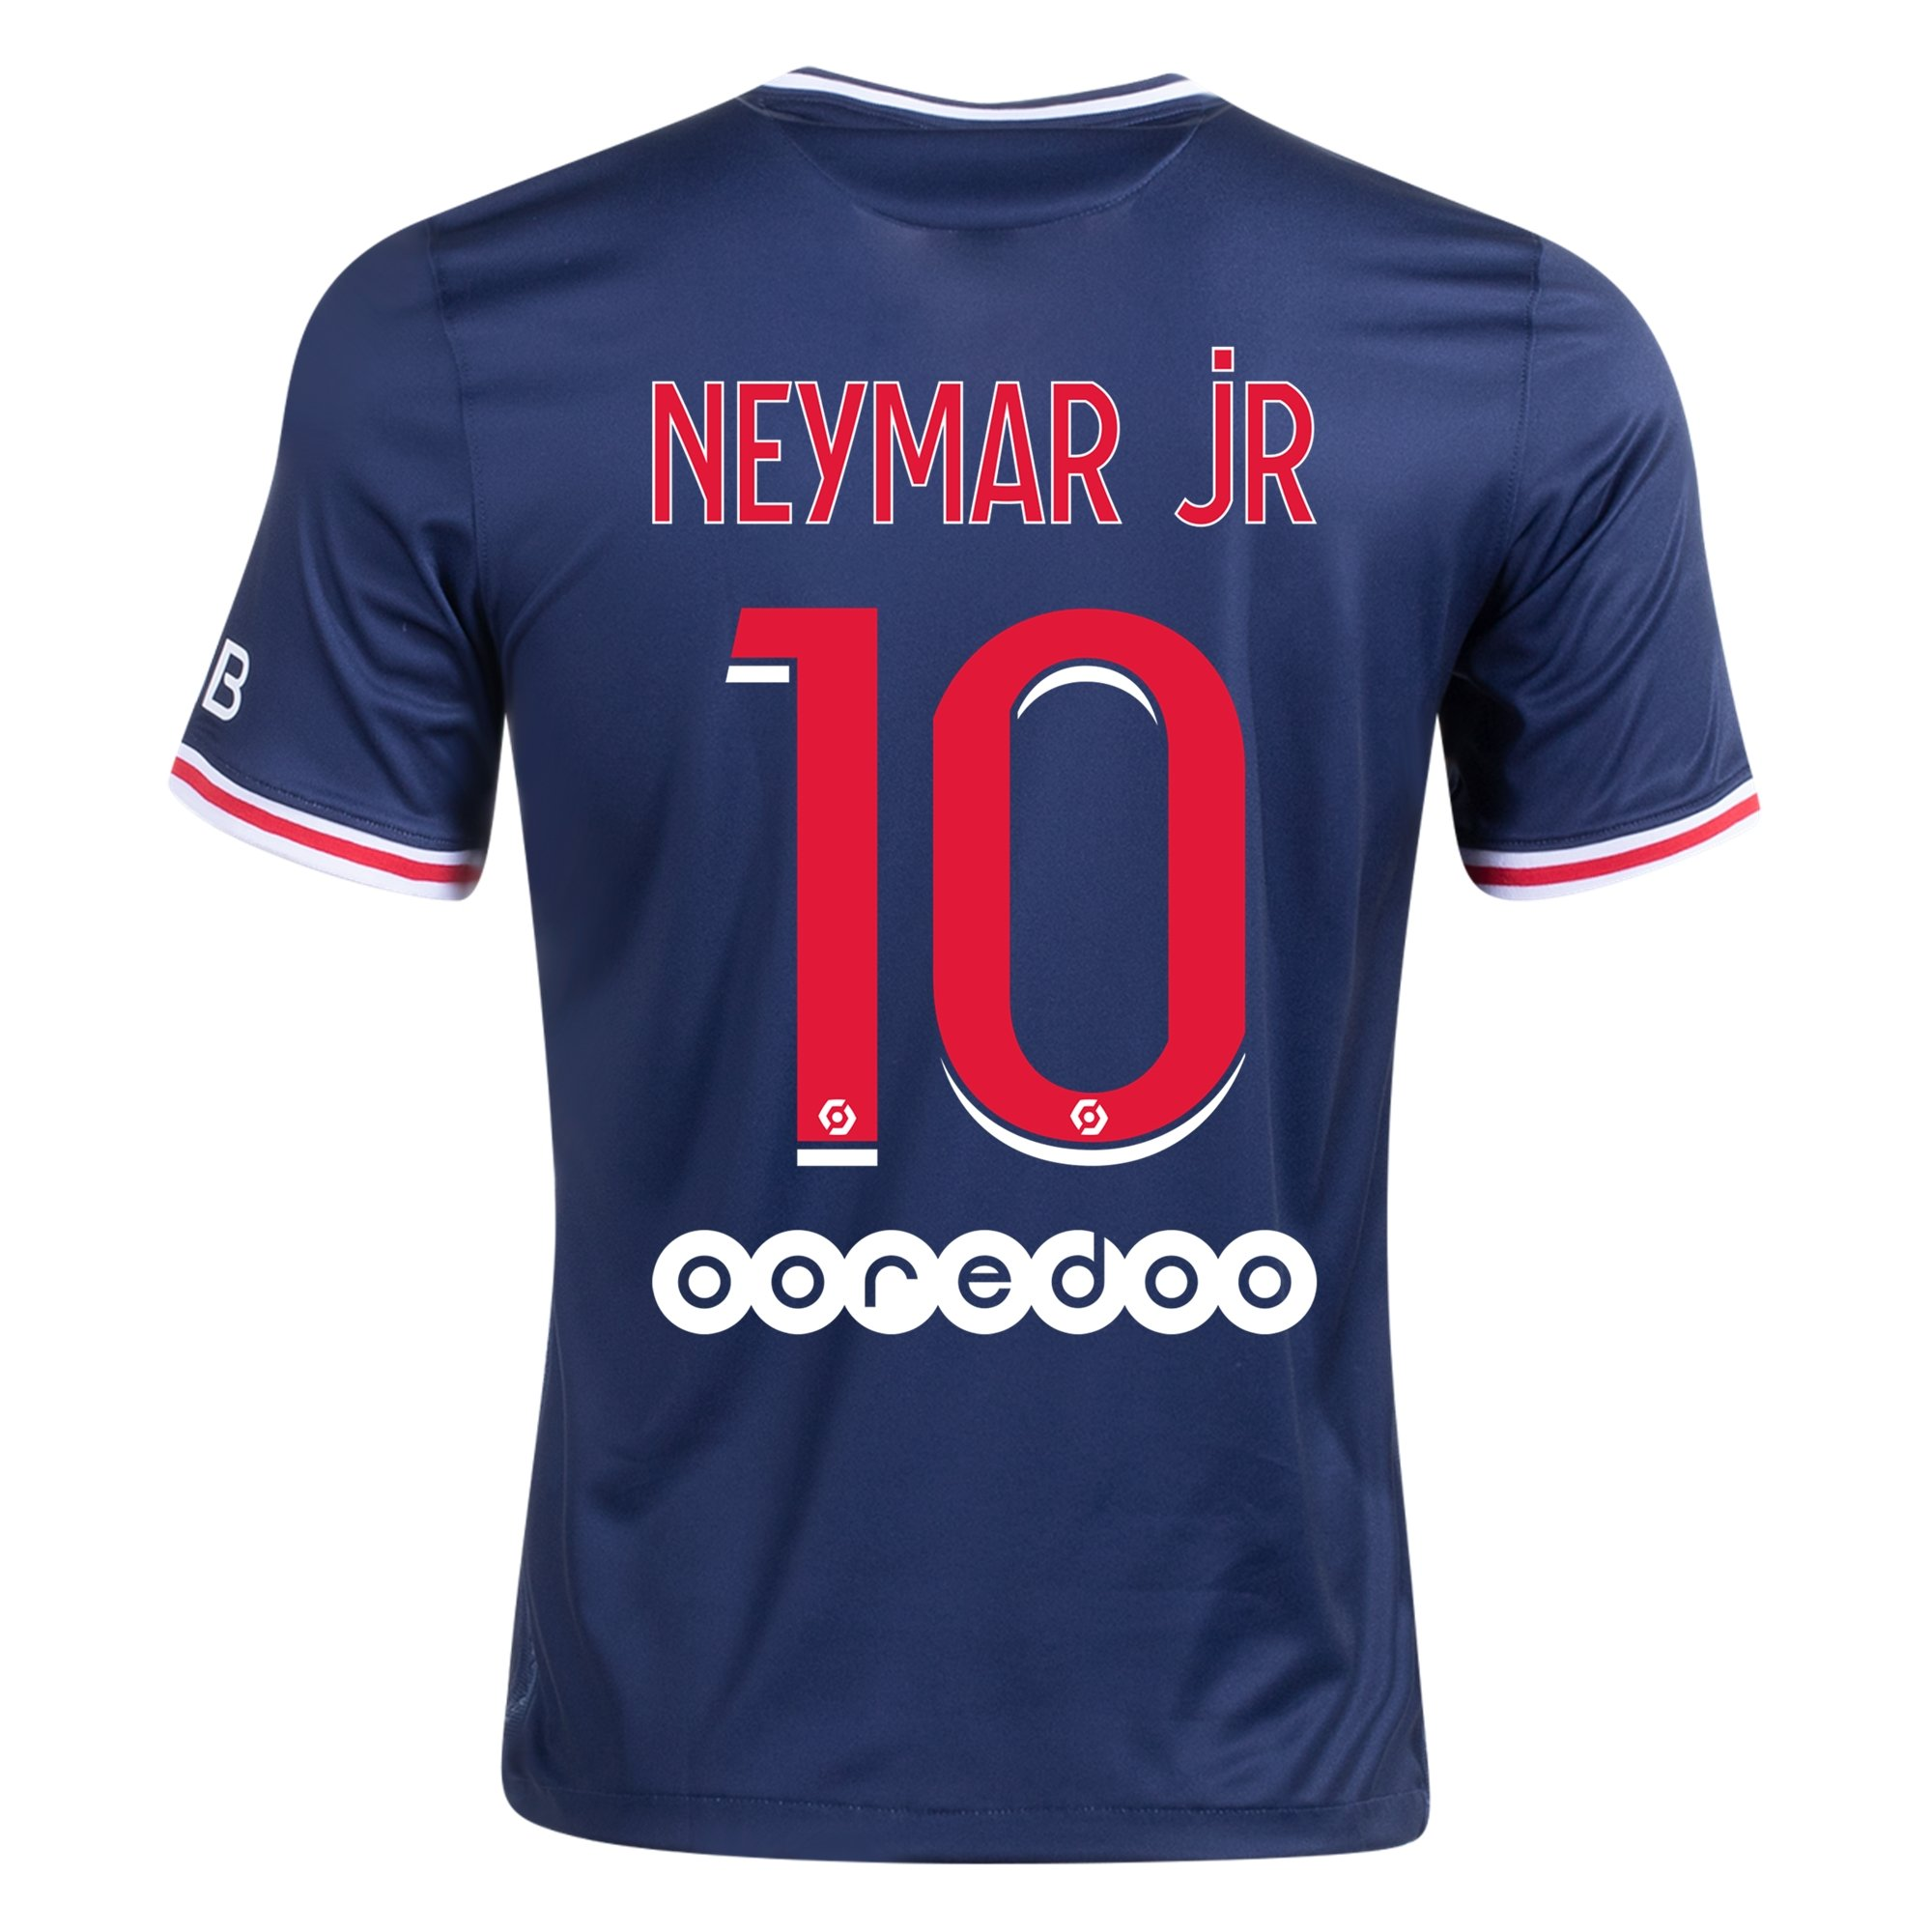 Nike Replica Neymar Jr.Paris Saint-Germain Home Jersey 20/21